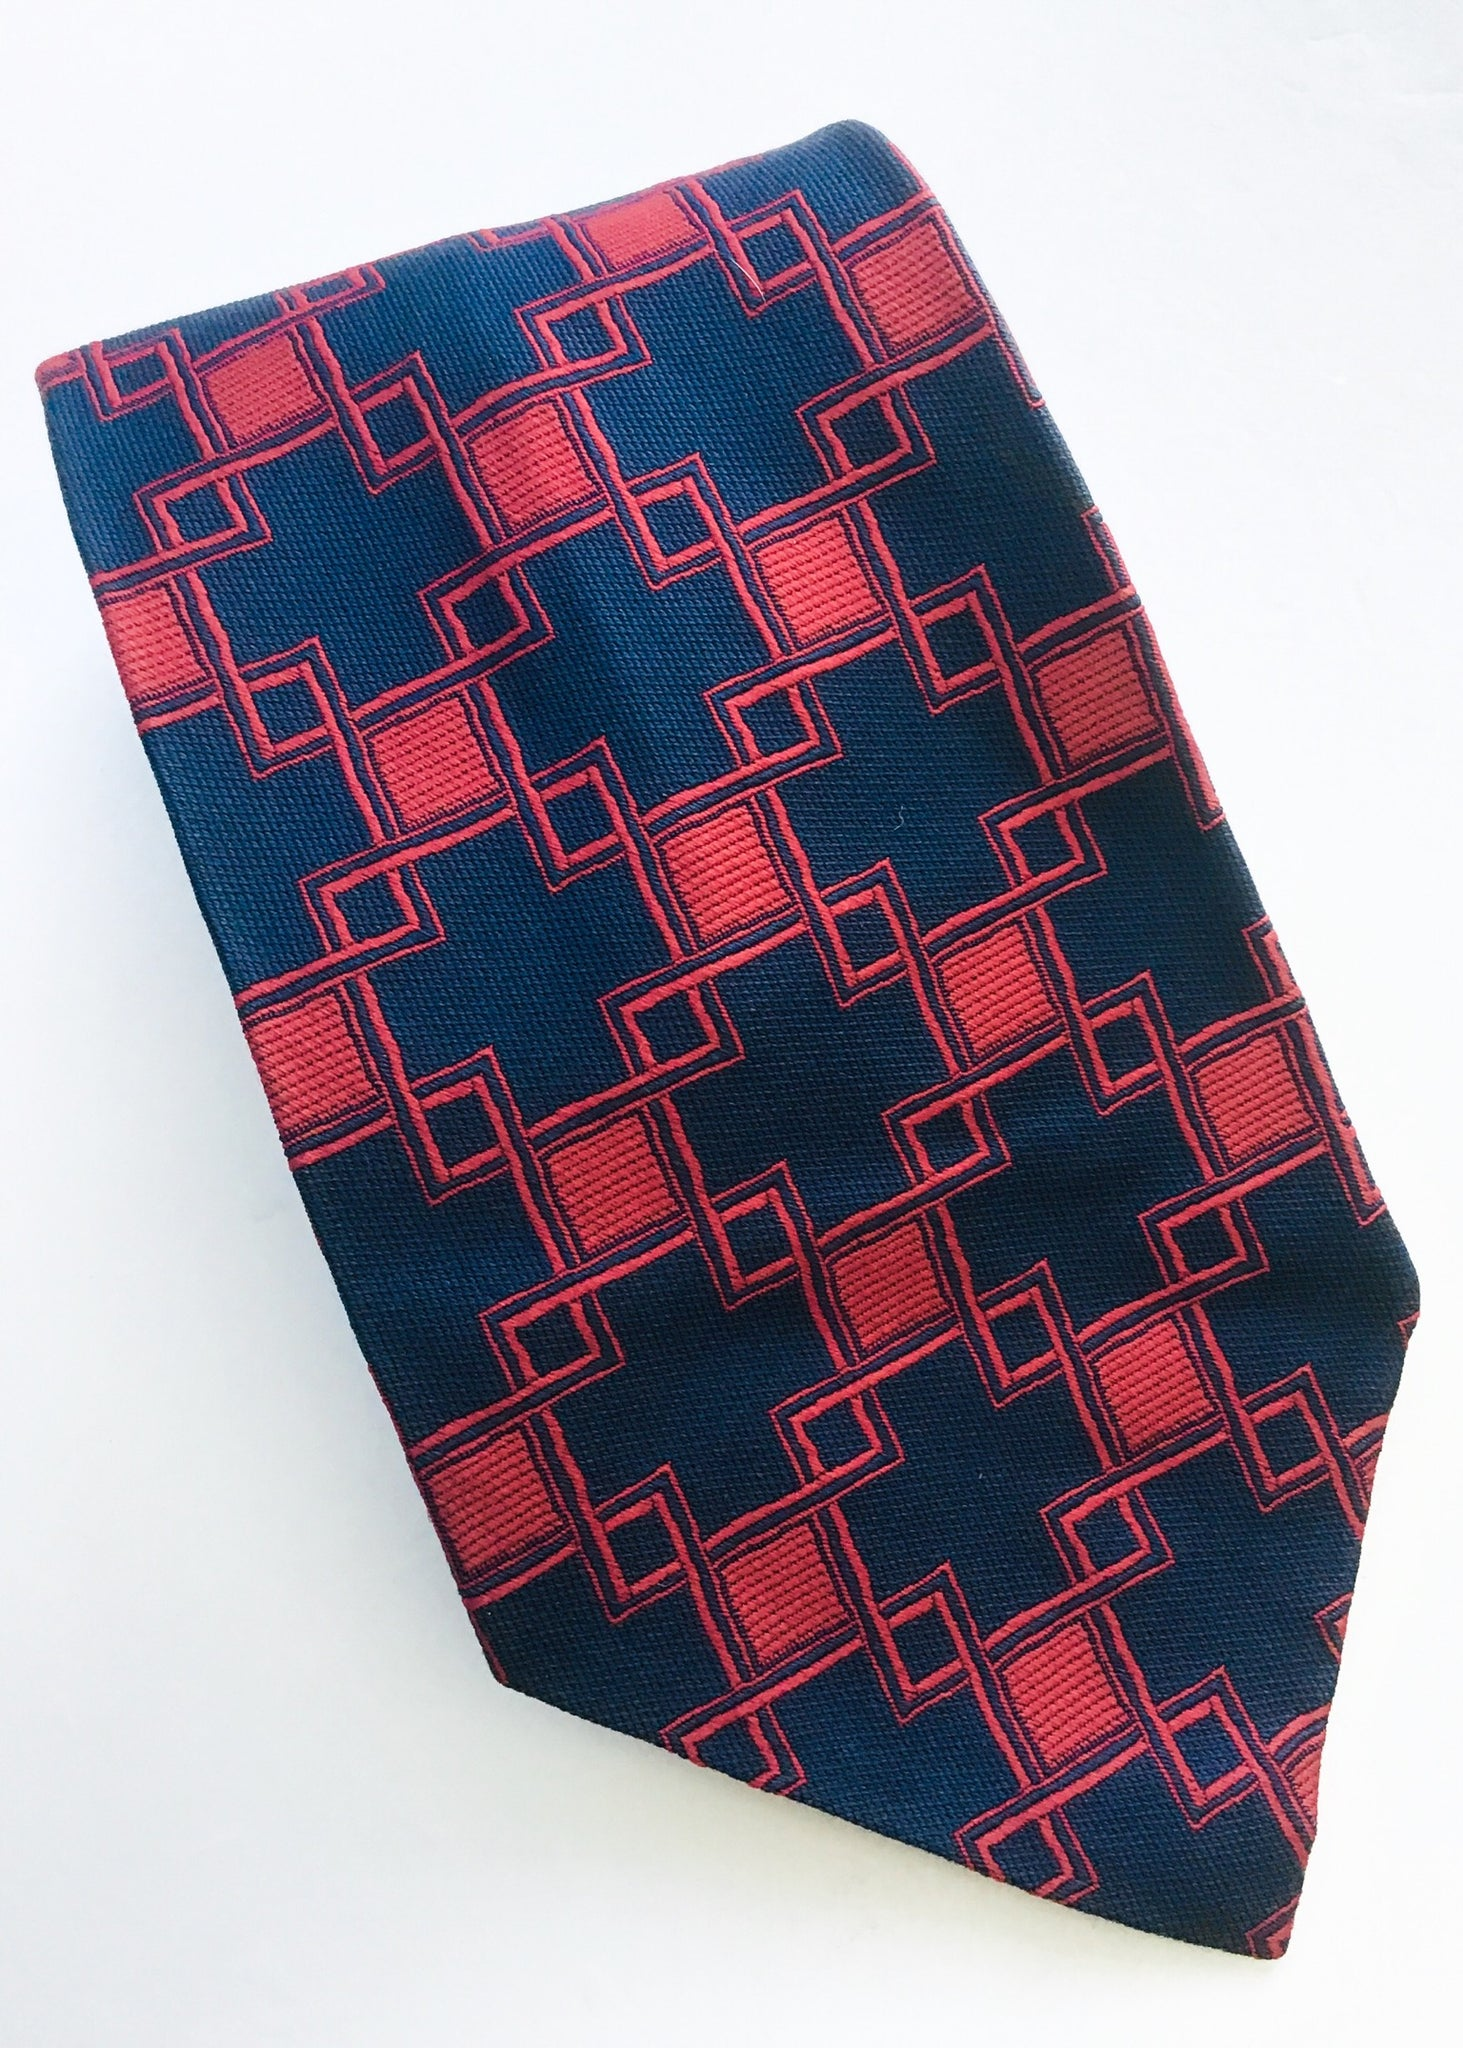 Vintage 70s kipper tie in red and blue cross pattern by don loper